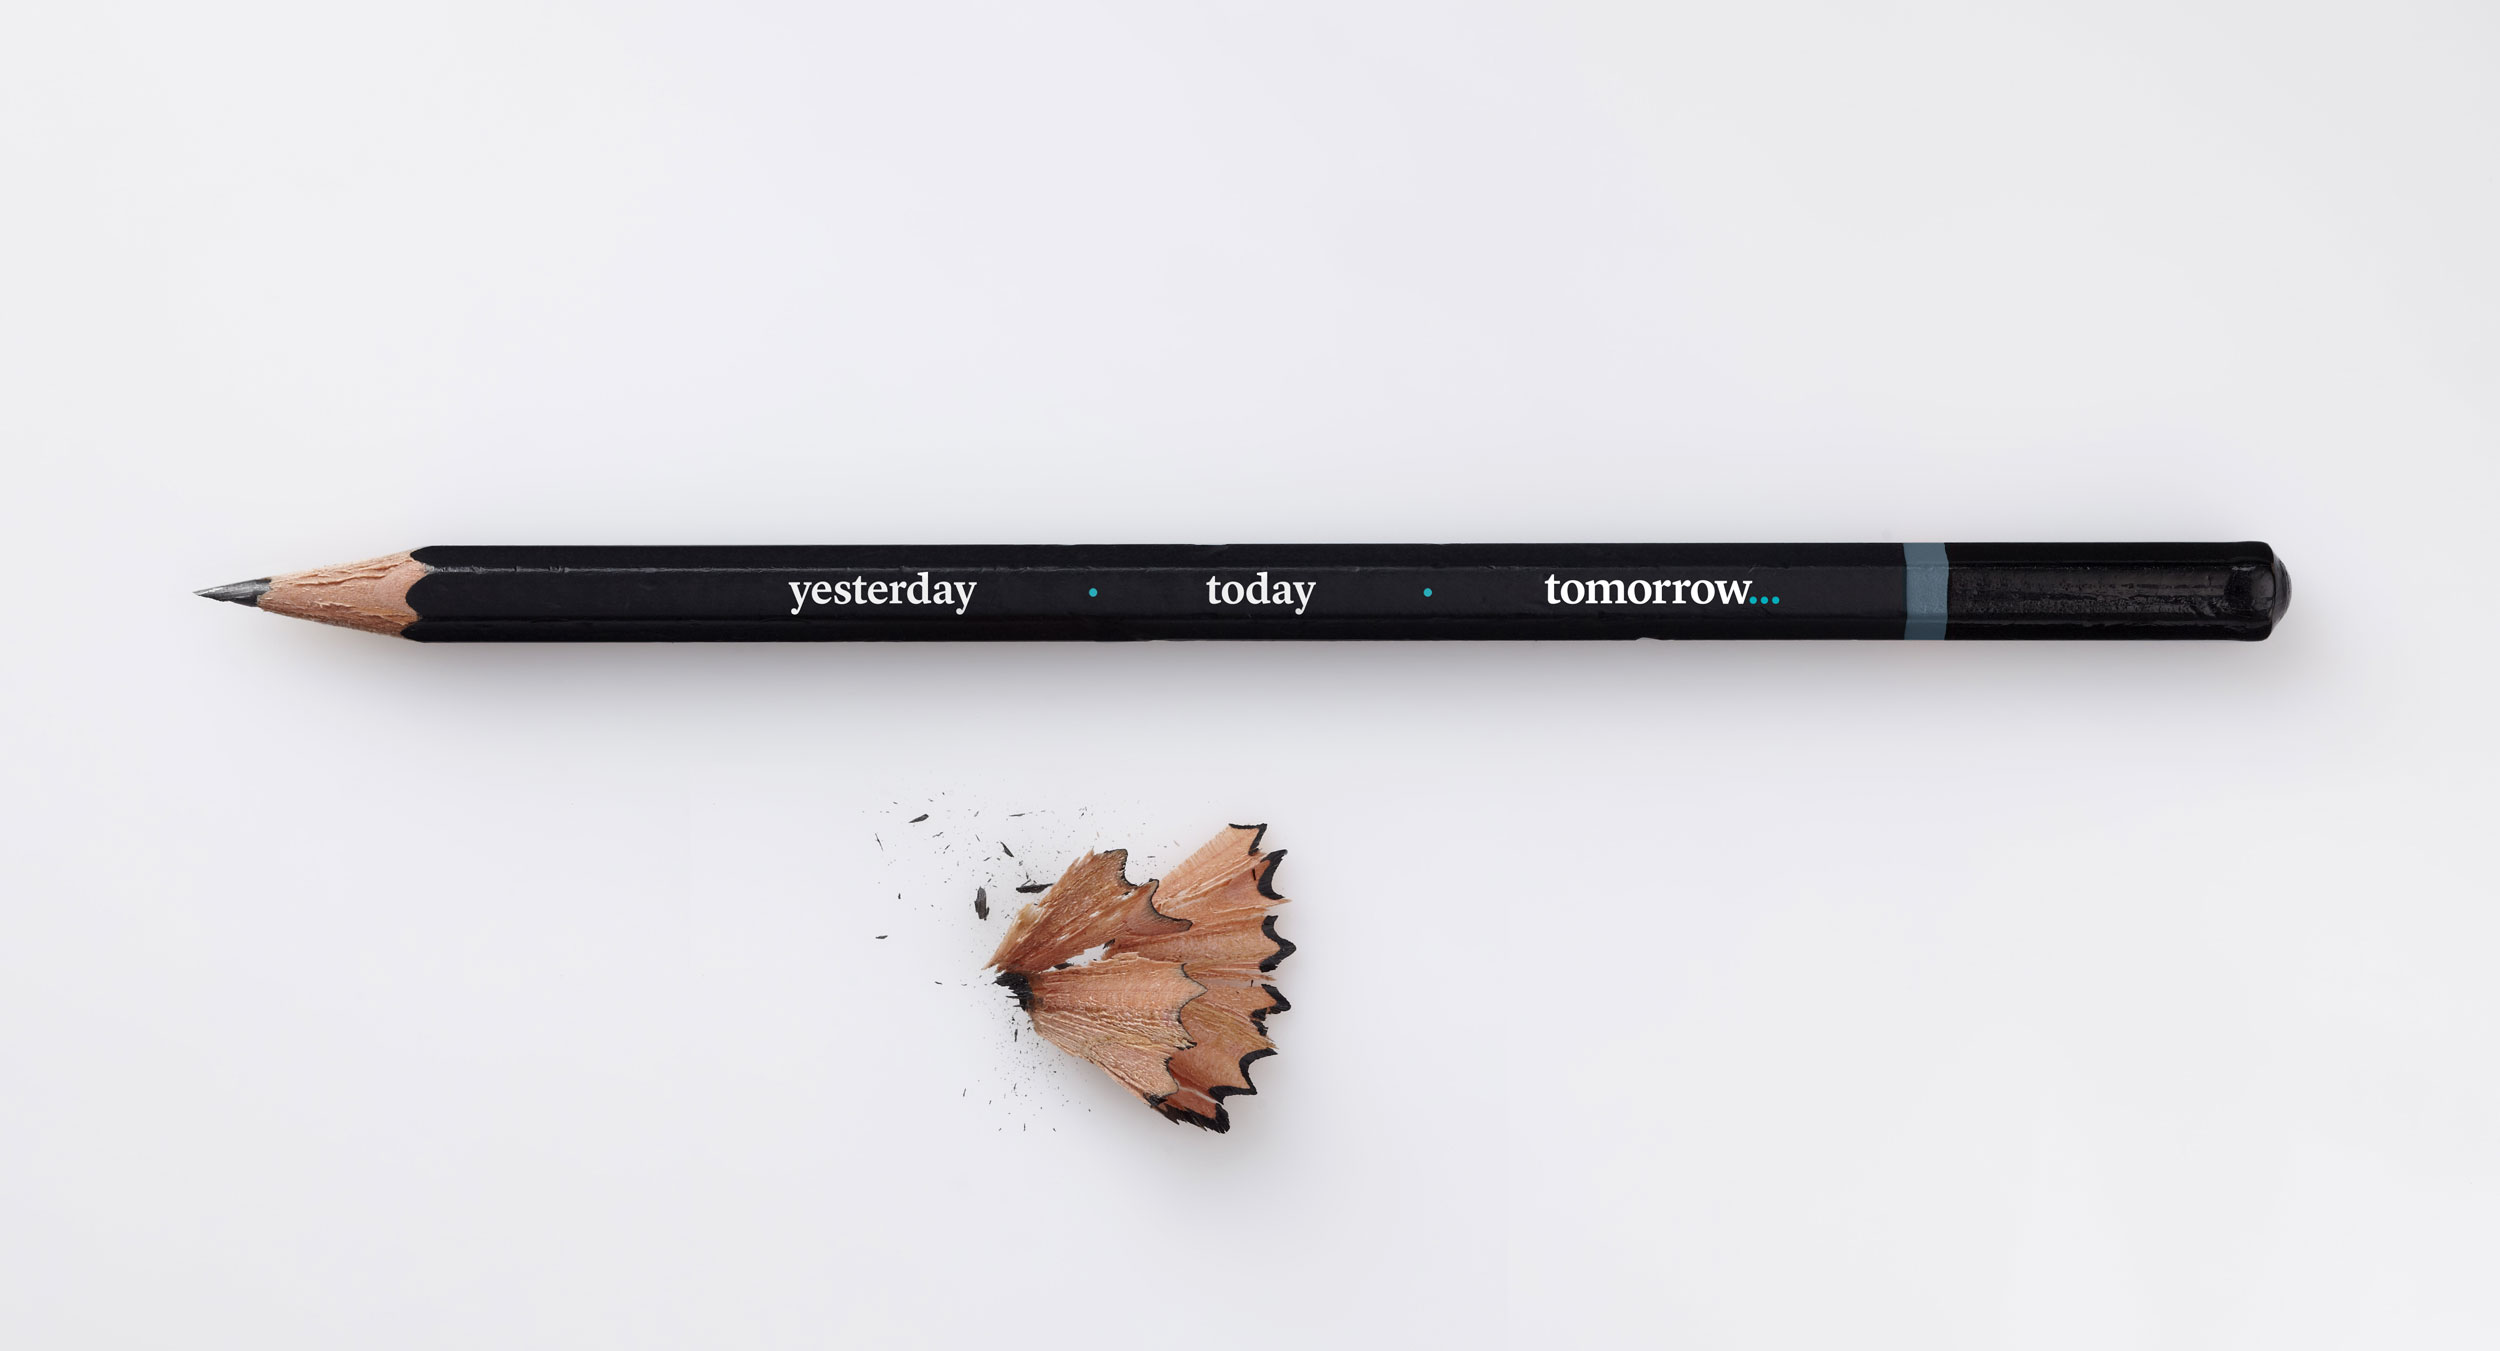 Tomorrow's promotional pencil – design by Ian Whalley